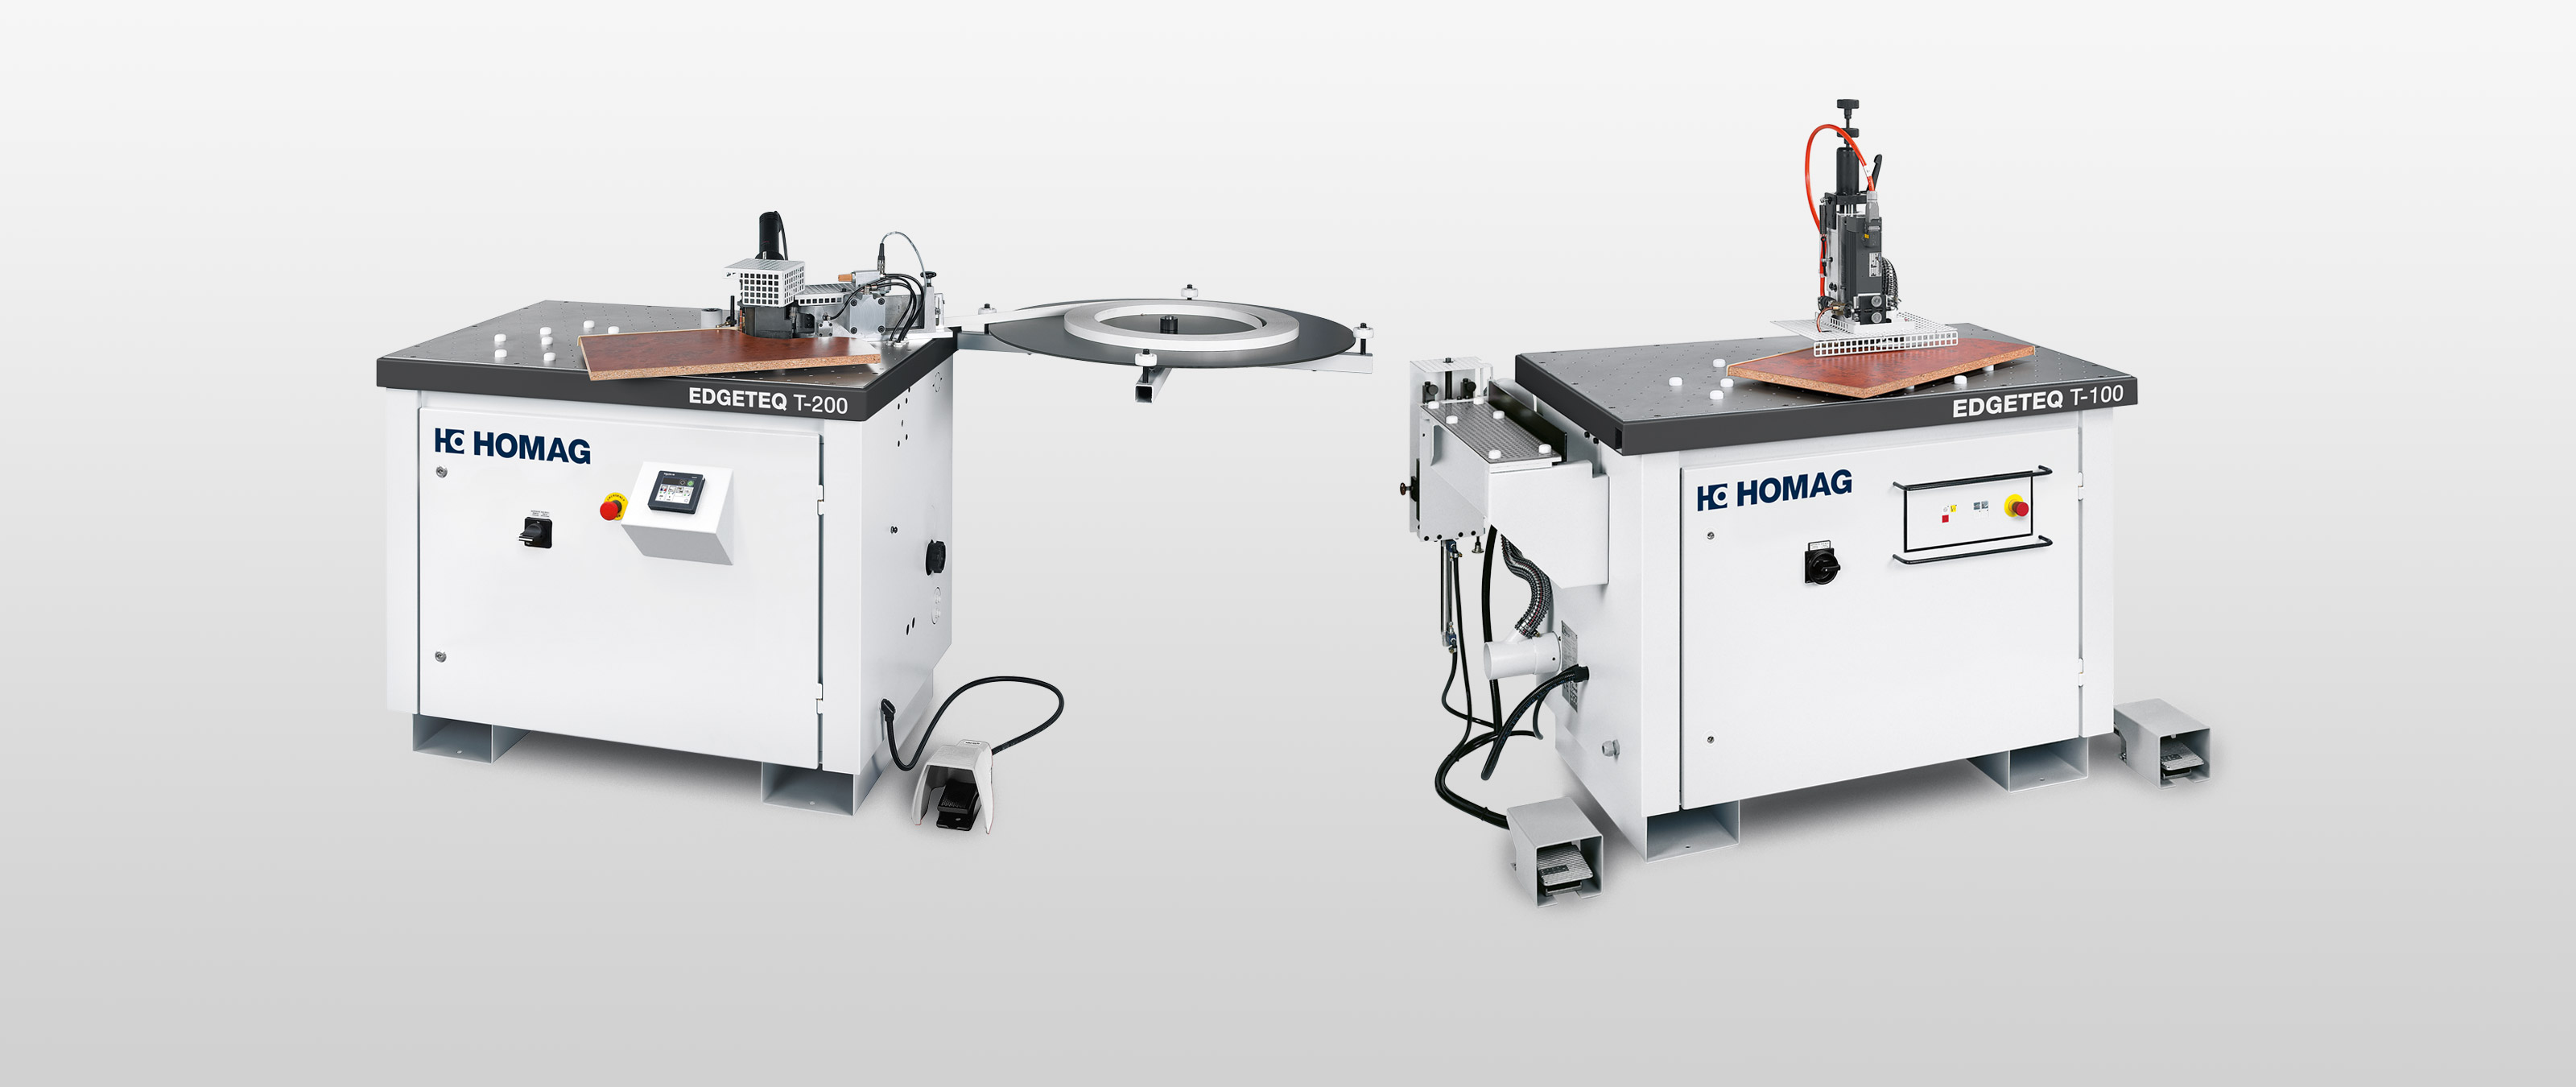 Table-top edge-banding machine / edge-trimming-machine from BRANDT